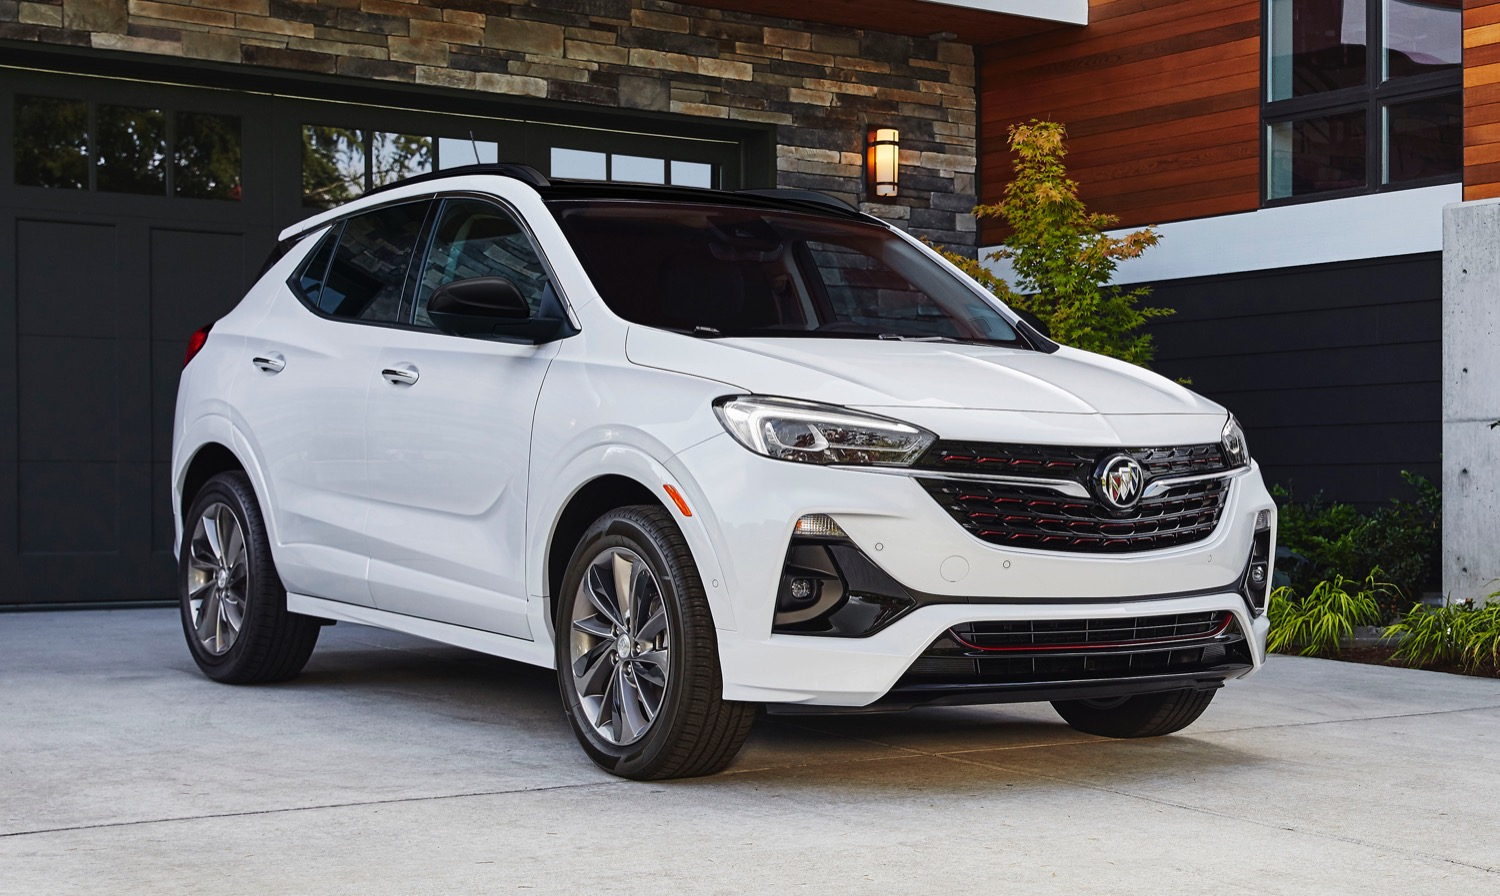 2022 Buick Encore Gx Info, Specs, Wiki | Gm Authority What Colors Does The New 2022 Buick Encore Gx Come In